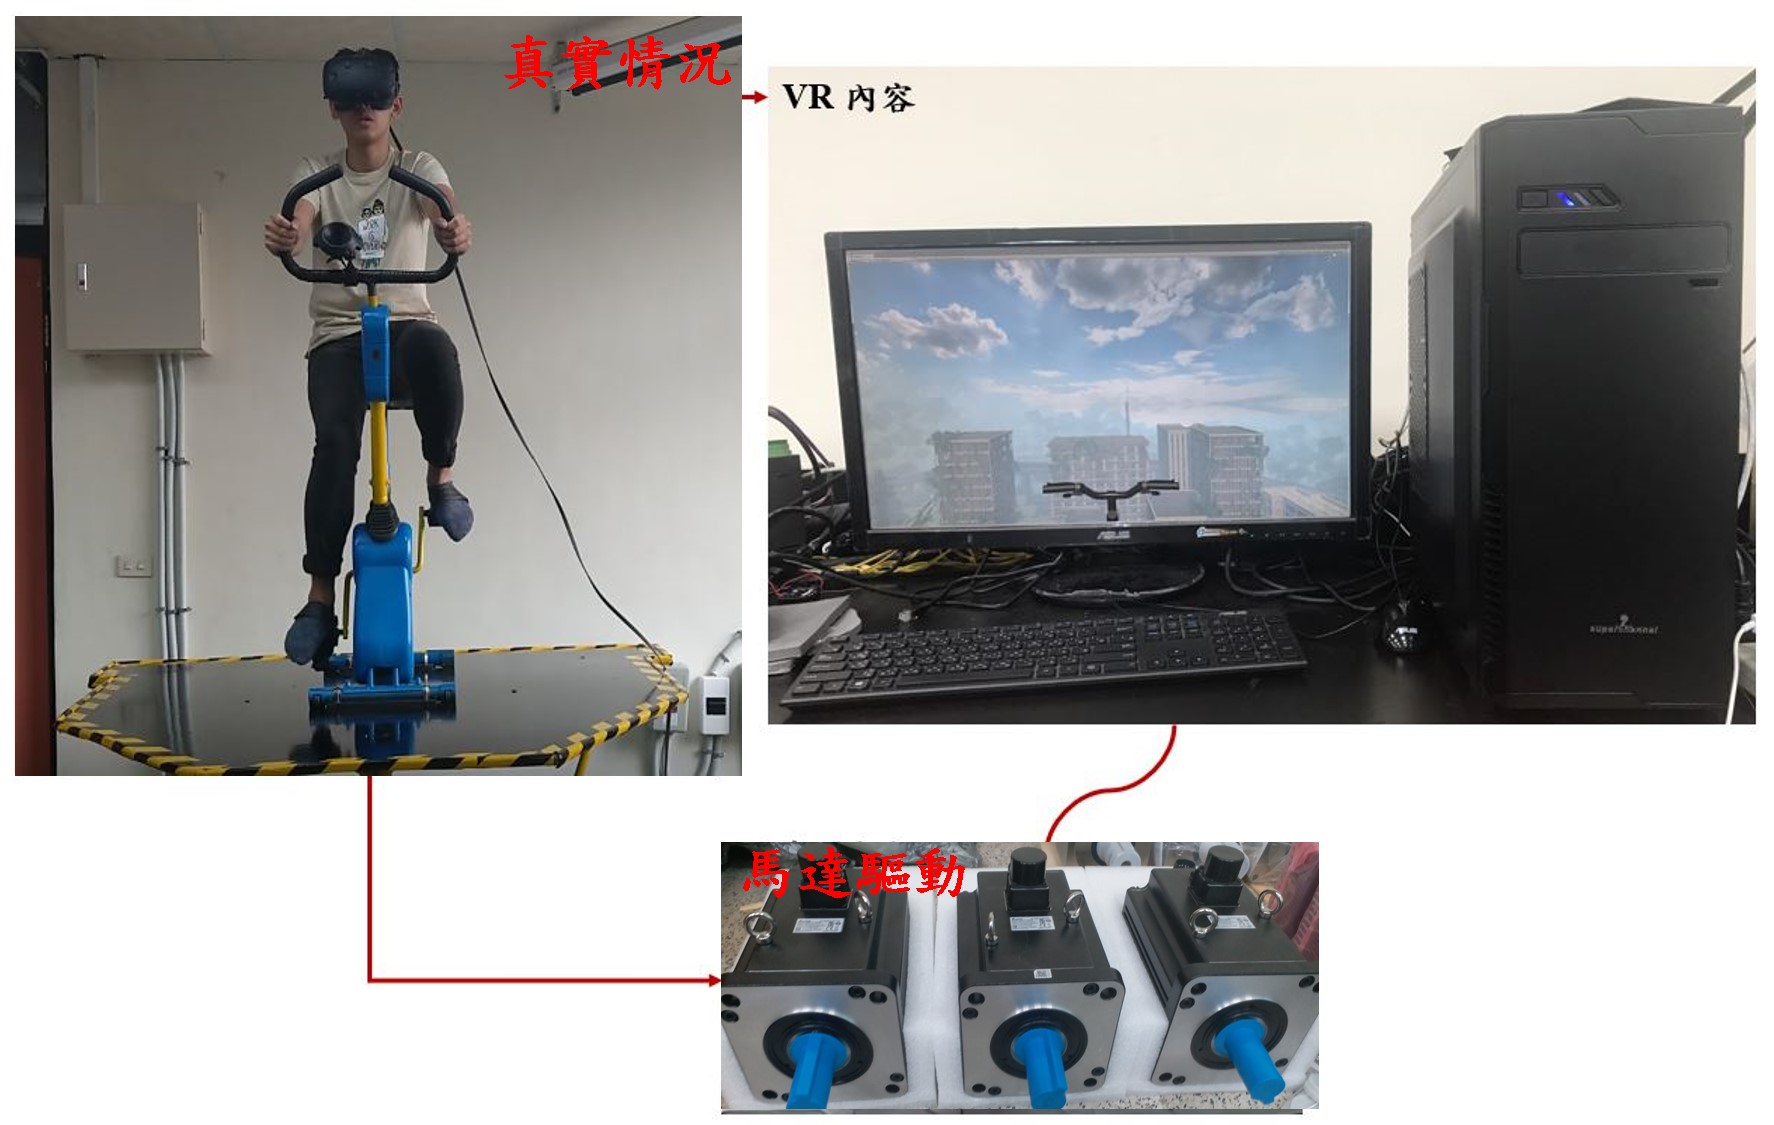 Integration of multi-axis motion-assistive platform with virtual reality imagery for rehabilitation purpose